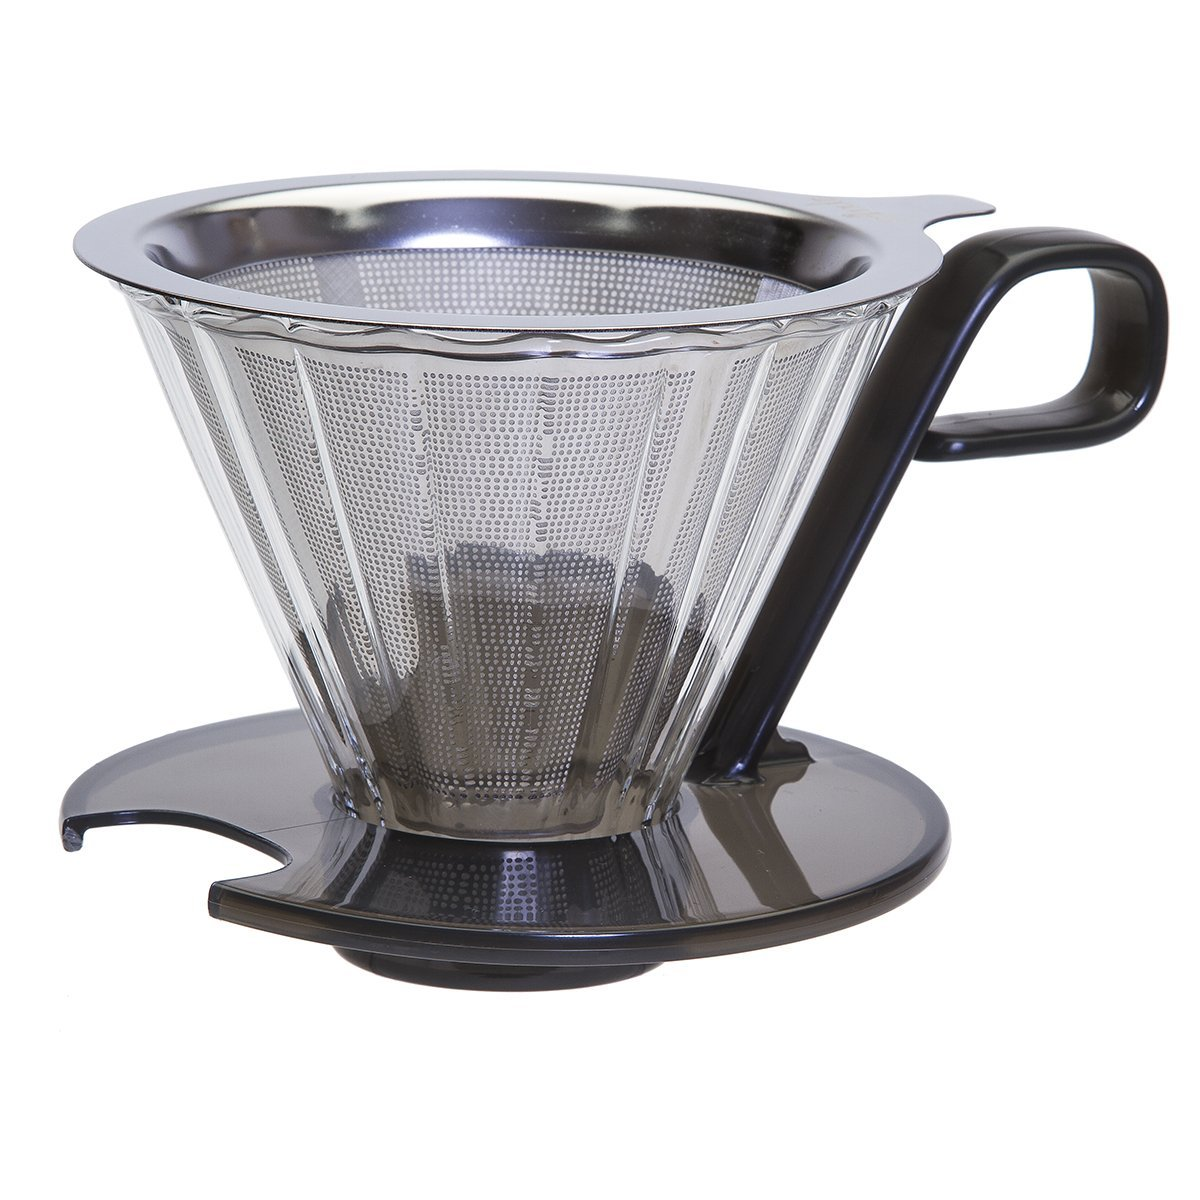 Primula PPOCD-6701 1-Cup Stainless Steel Pour Over Coffee Maker, 4.8 x 4.8 x 4.8 inches Black